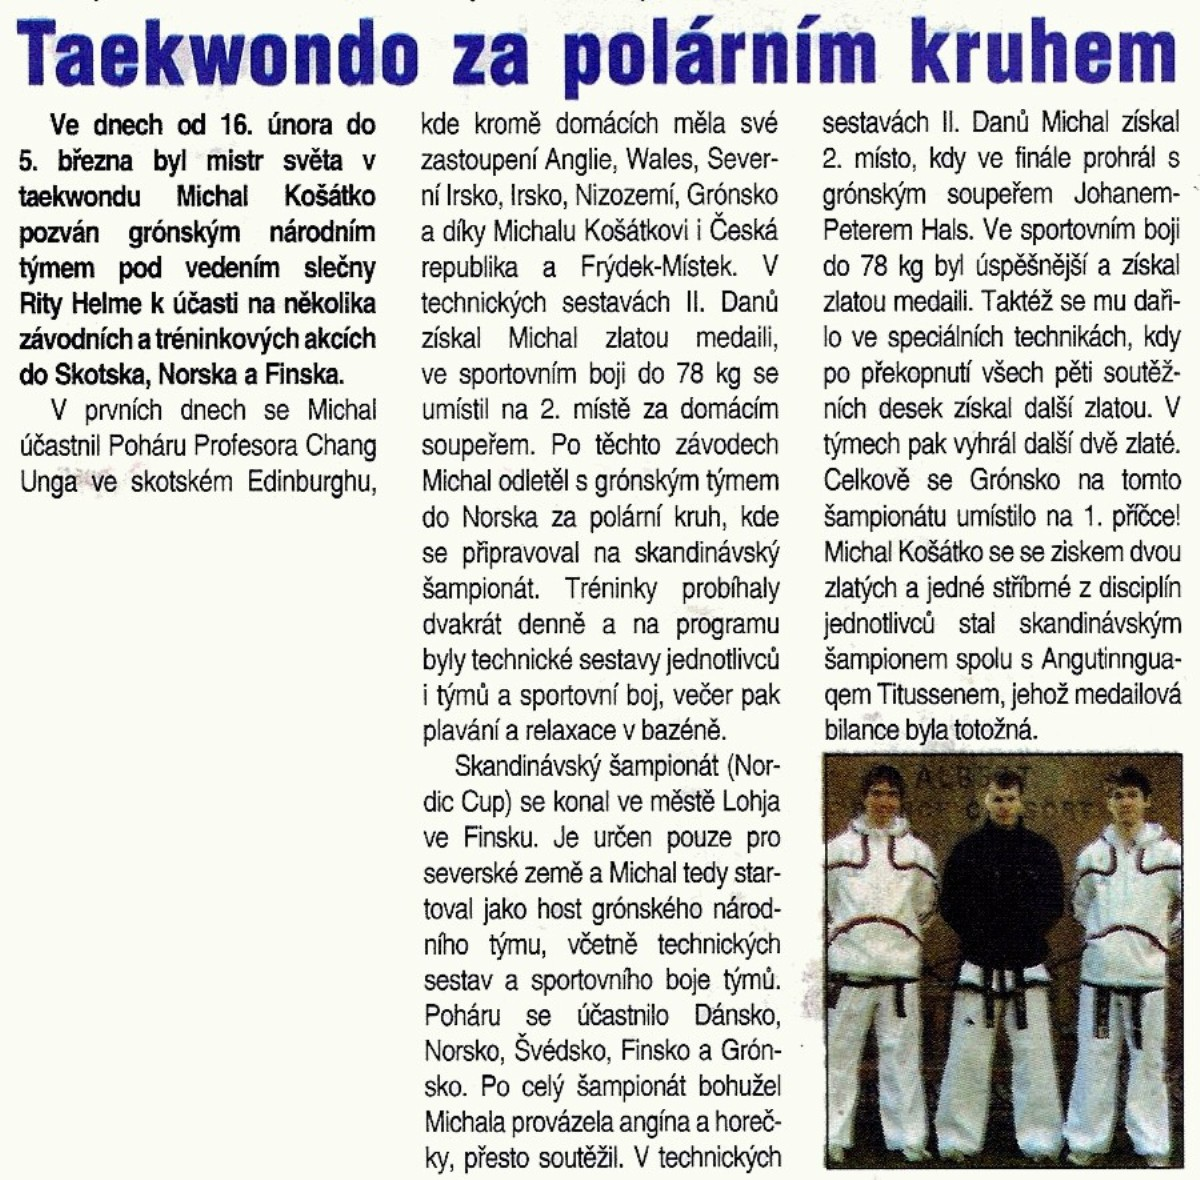 Taekwon-do ITF behind the polar circle (Czech Republic, February 2007)